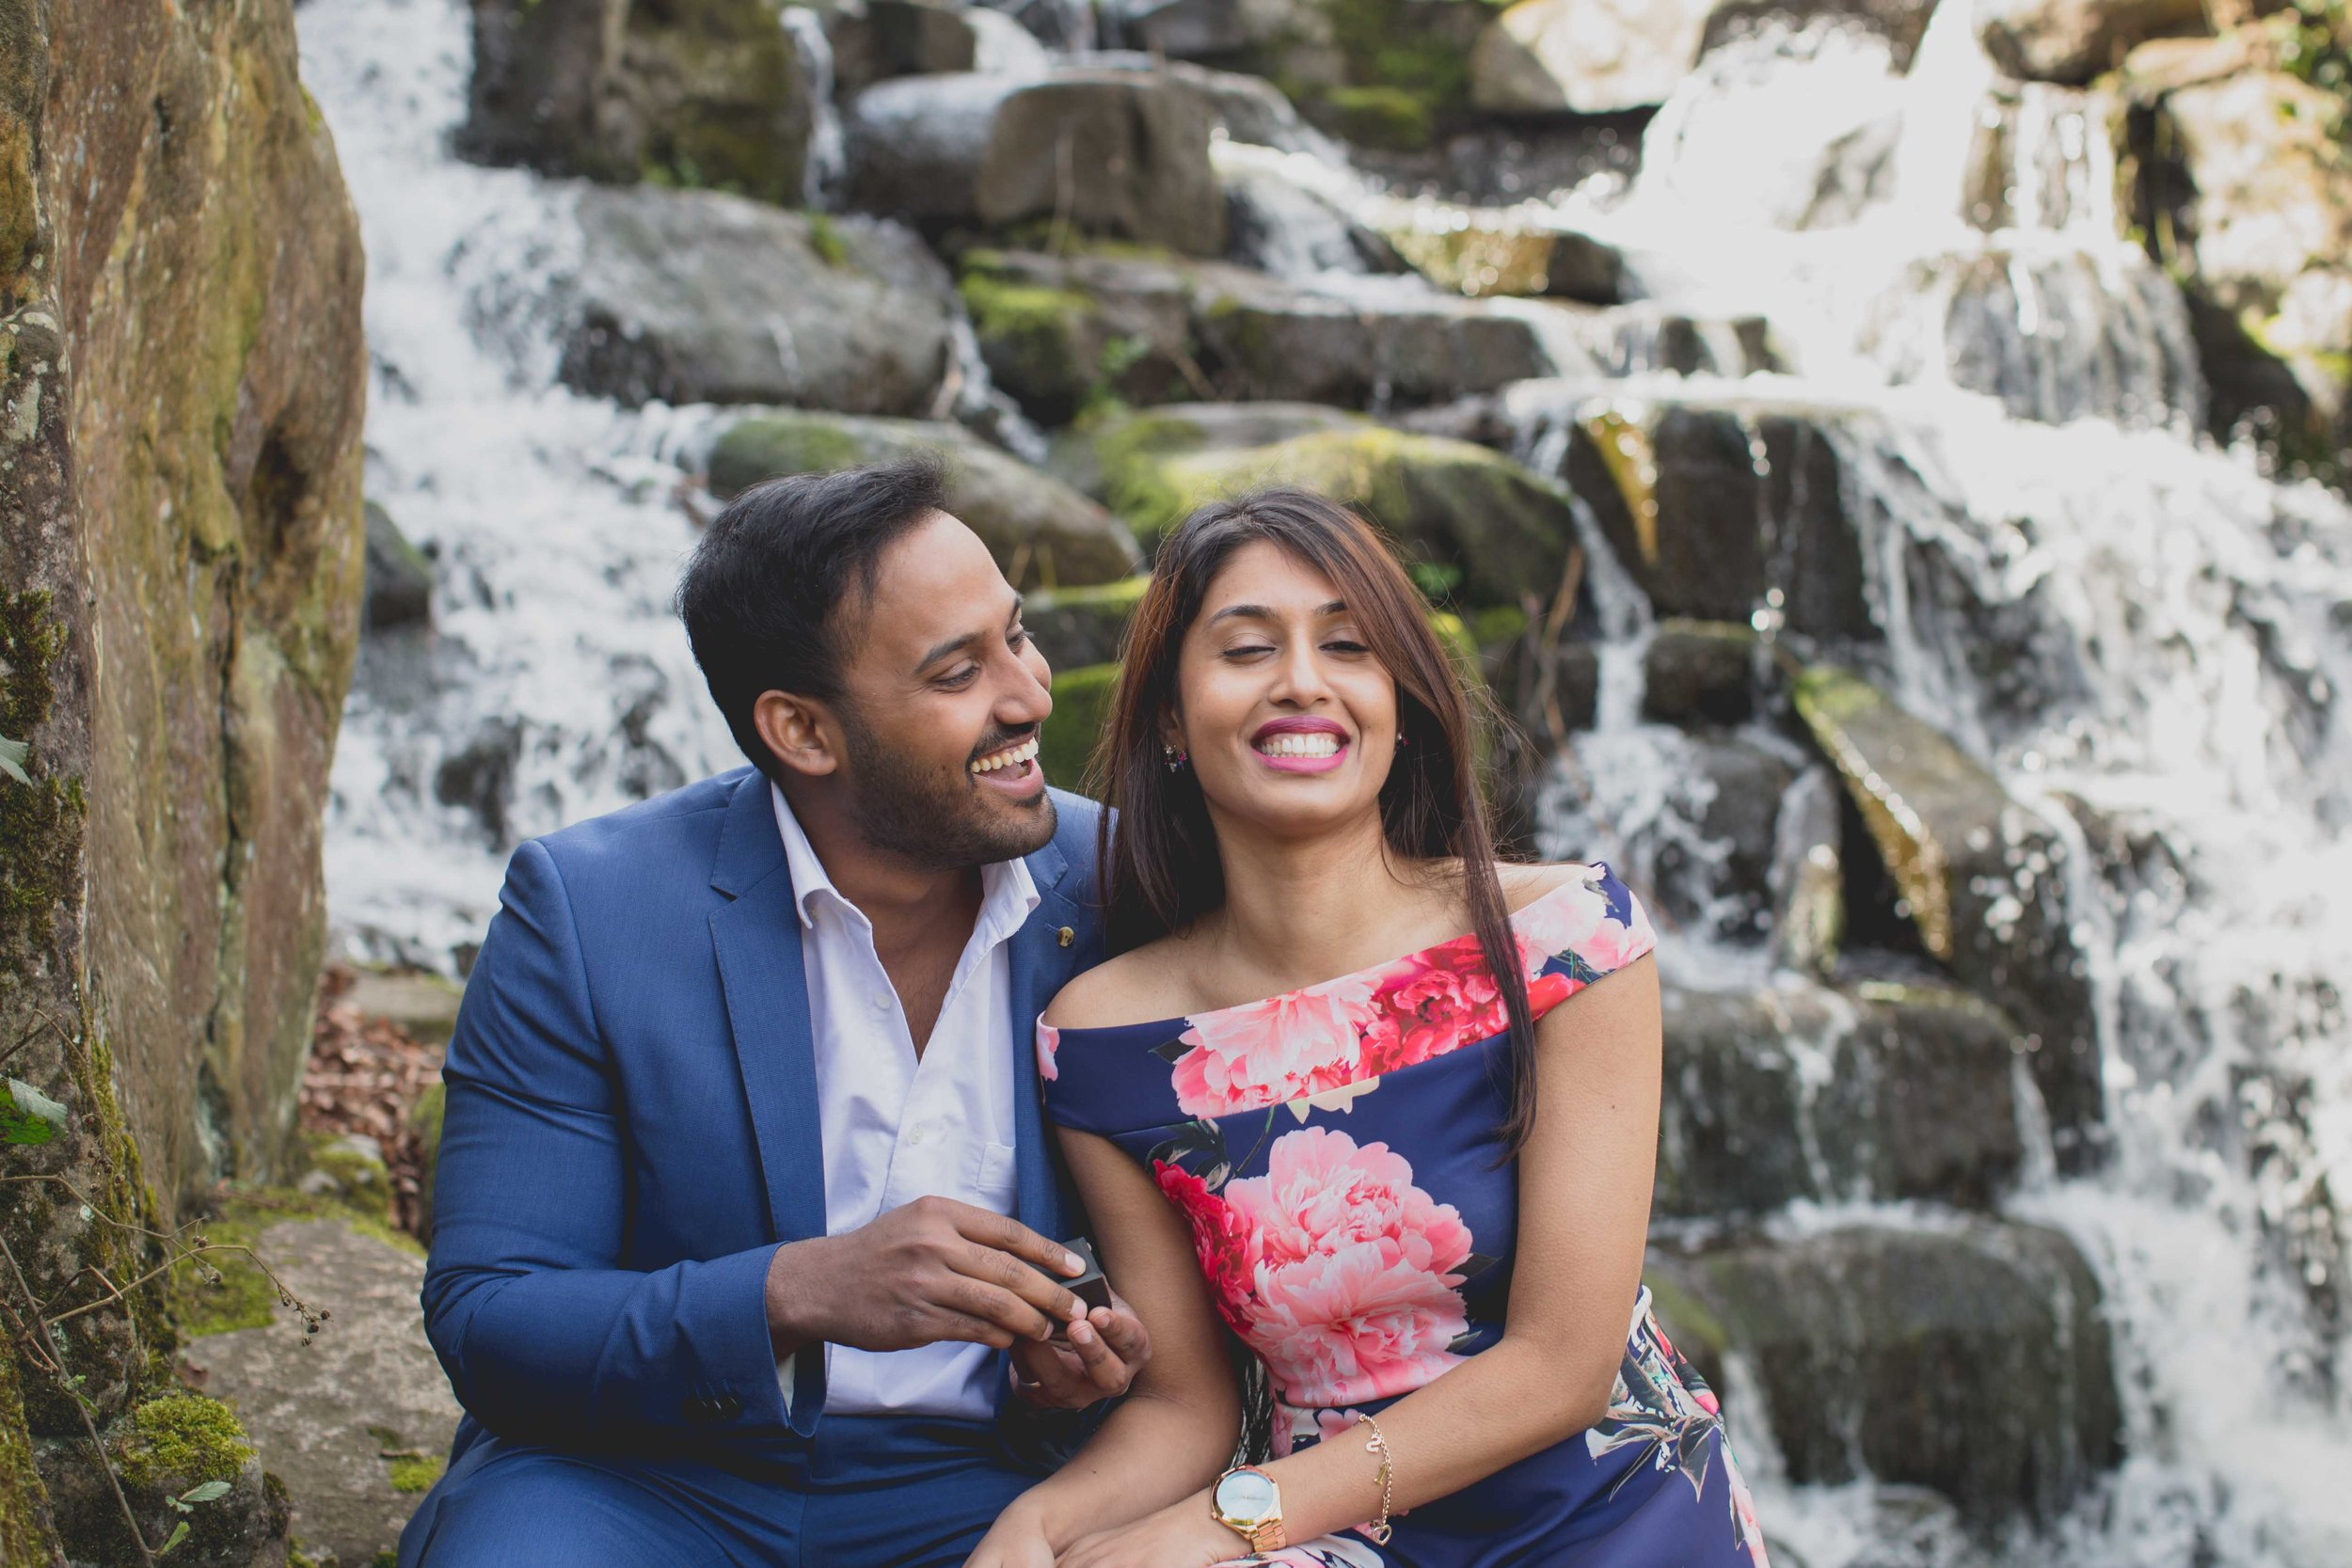 Virginia-waters-windsor-pre-wedding-engagement-shoot-proposal-waterfall-female-asian-wedding-photographer-natalia-smith-photography-11.jpg